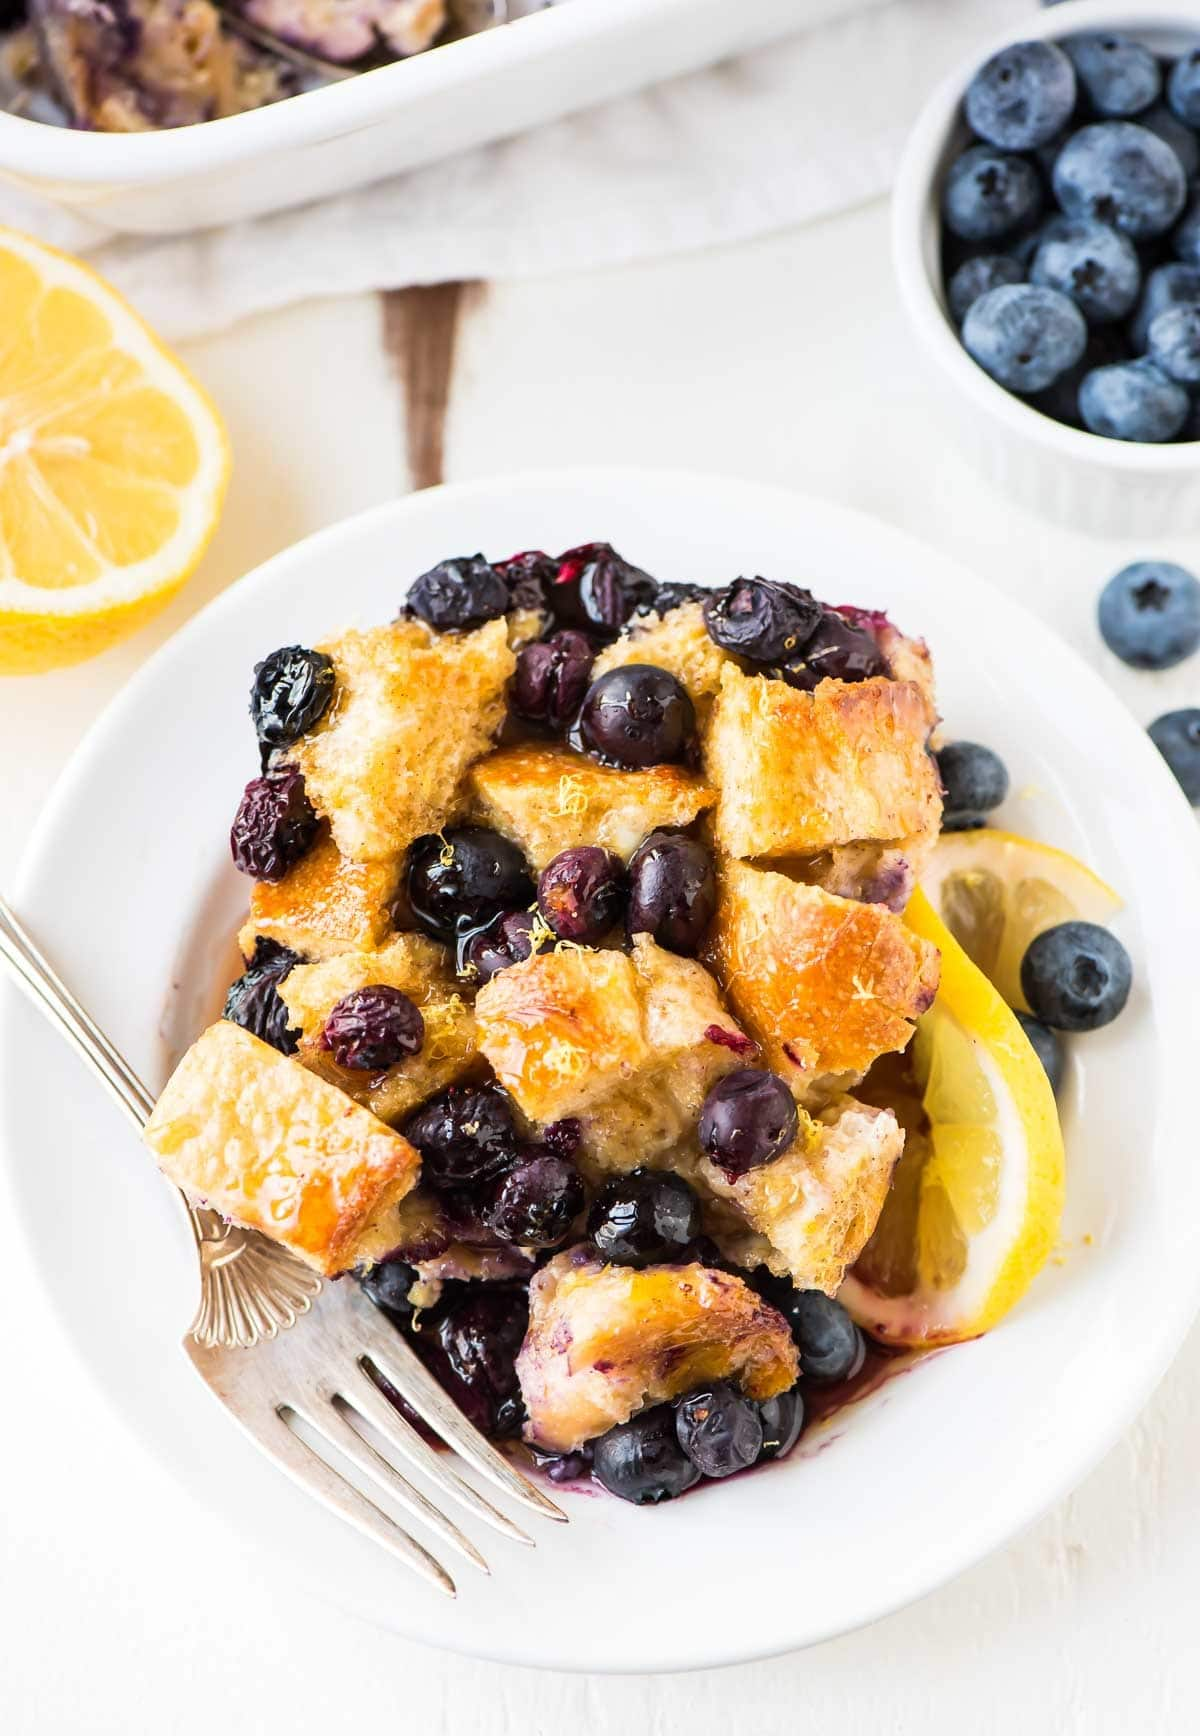 Lemon blueberry French toast casserole in a bowl